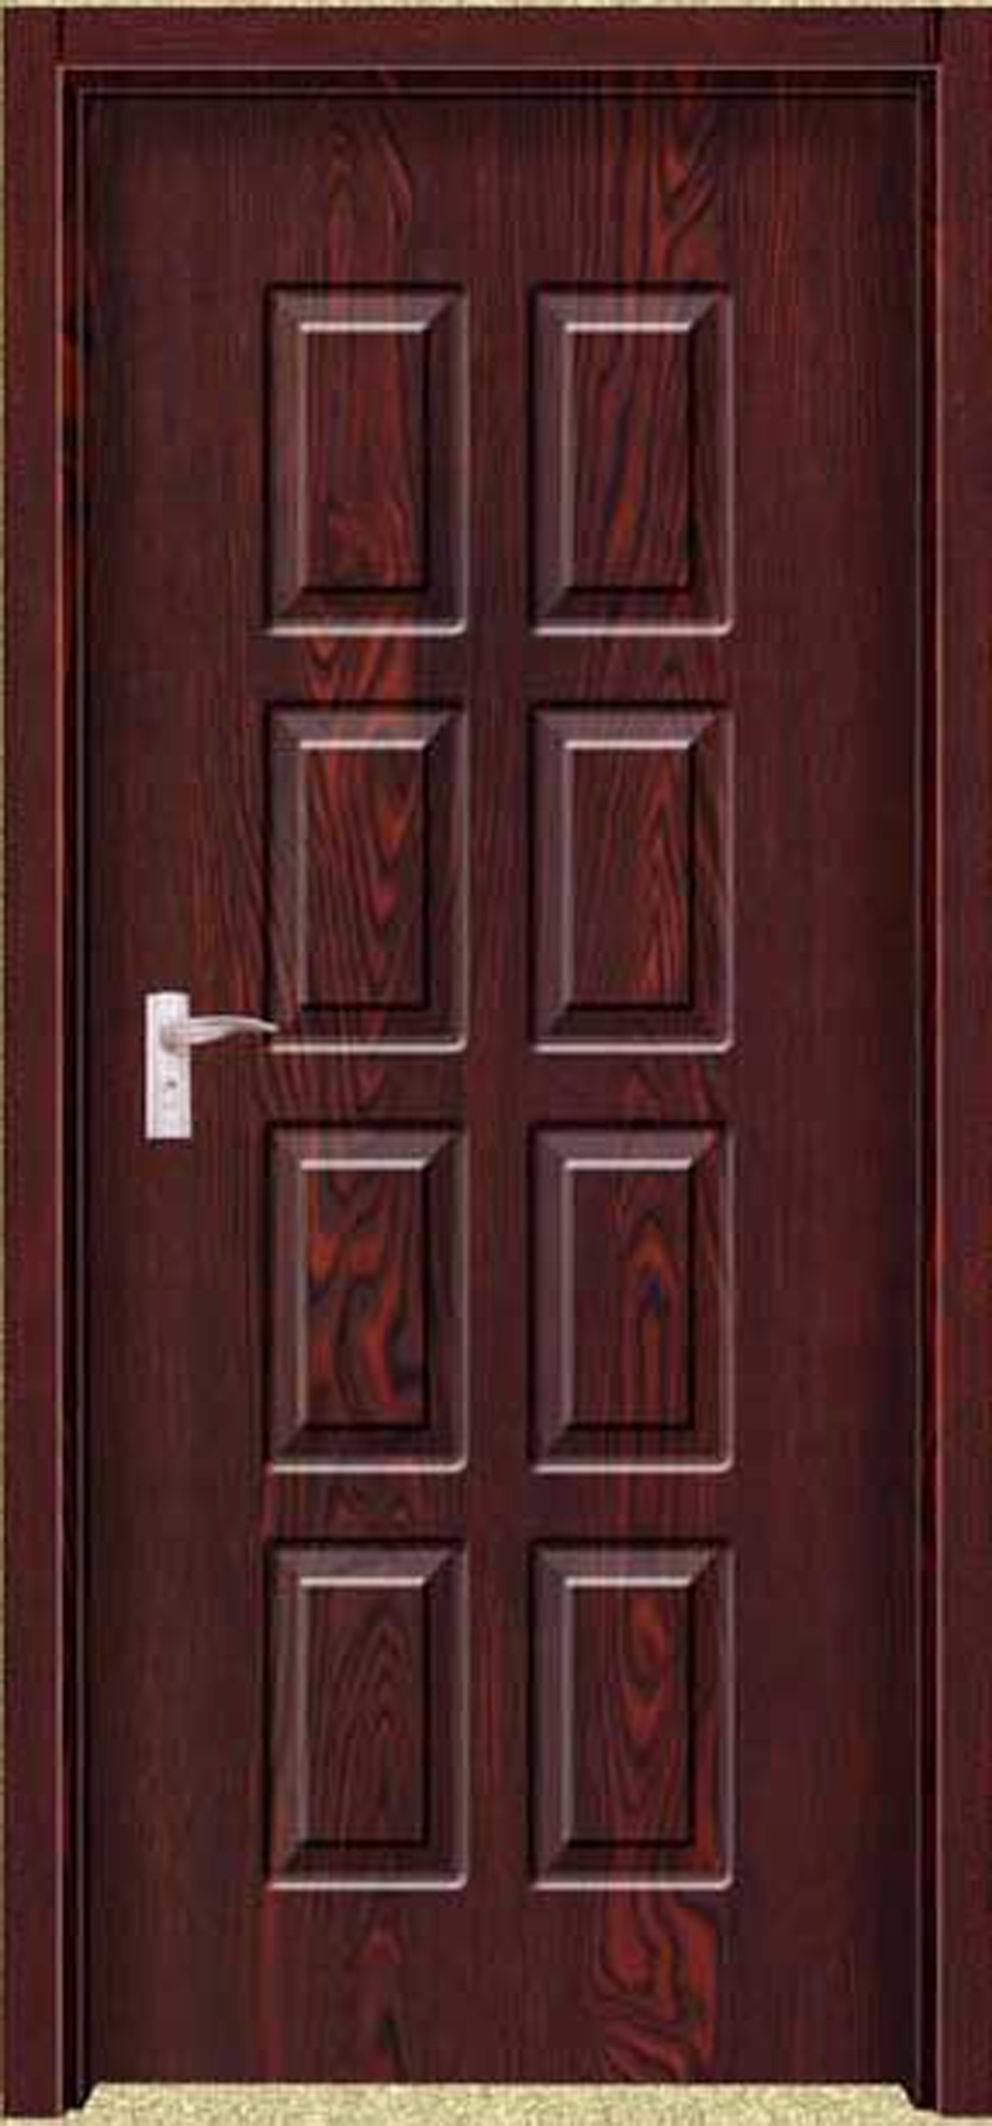 China melamine door hd 8007 photos pictures made in for Entrance doors